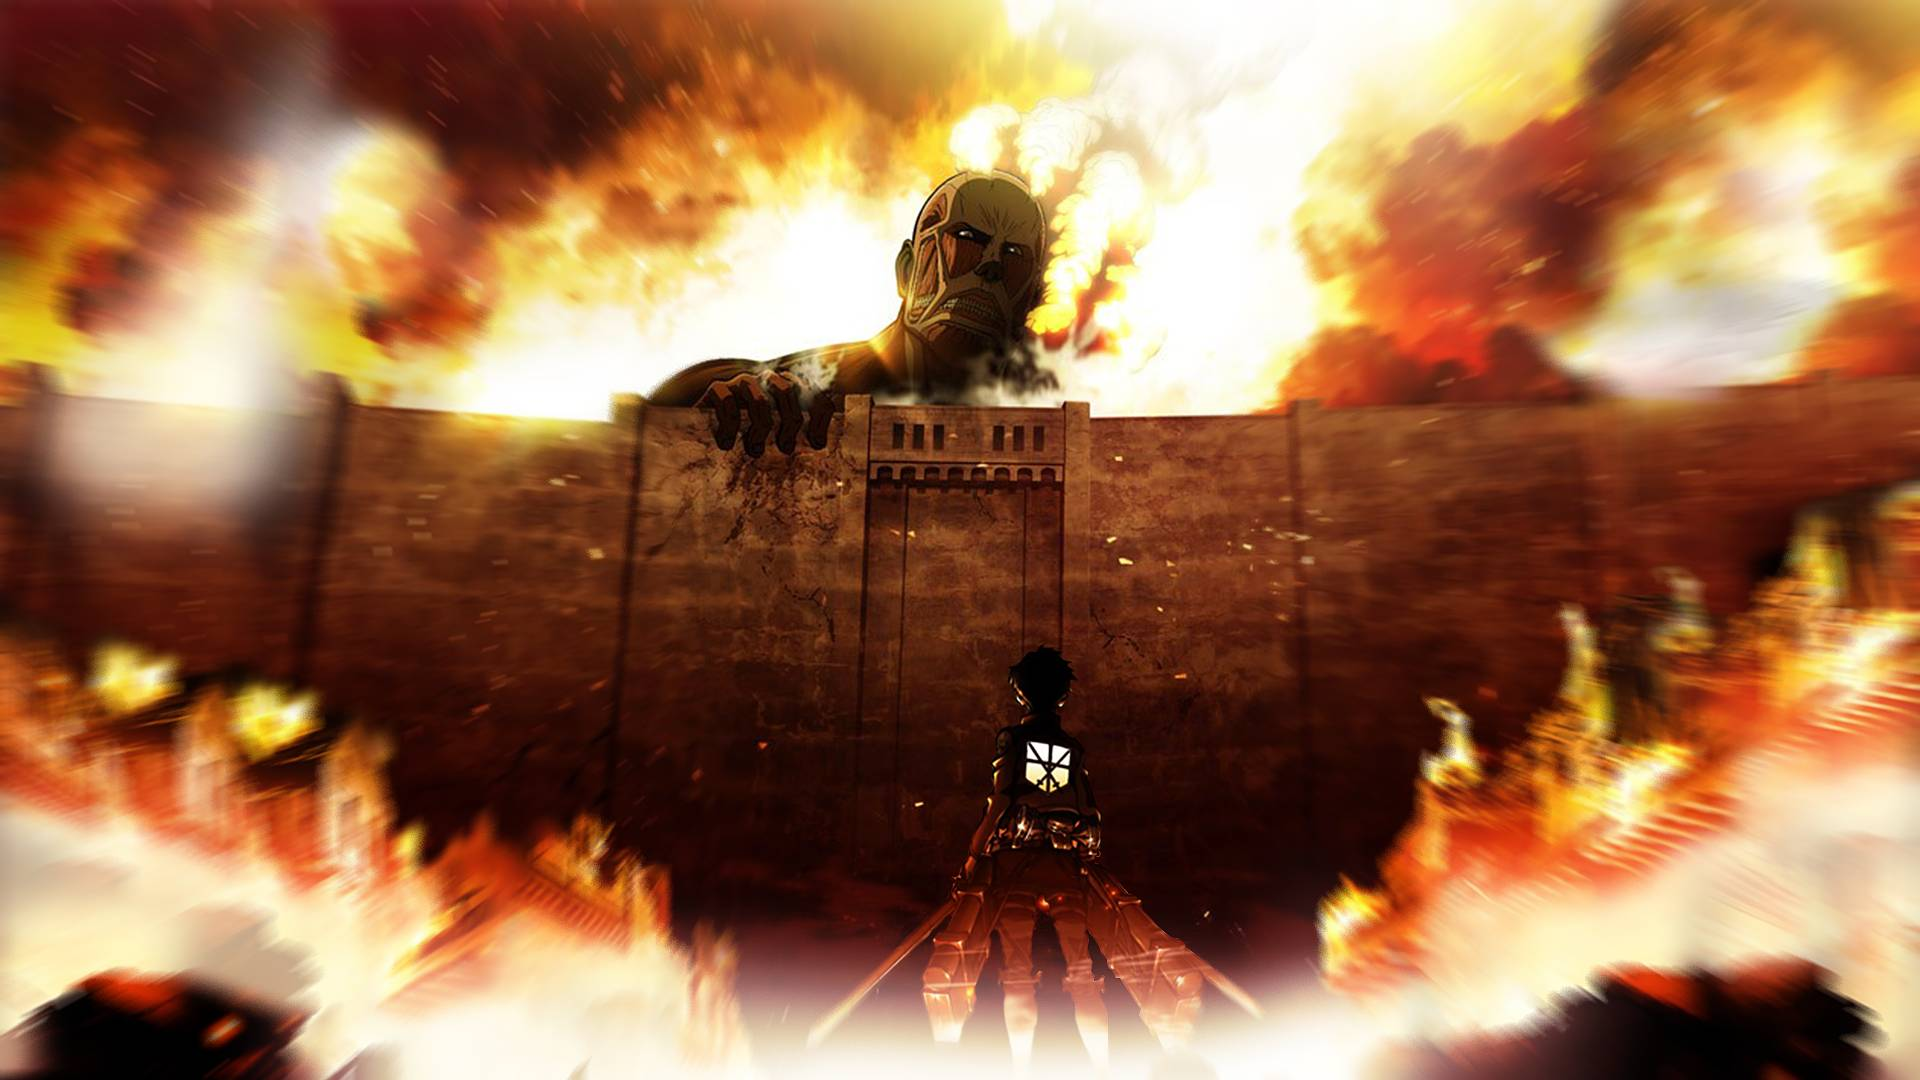 If you want to go beyond what's included in your operating system or old photos from your camera roll,. Attack On Titan Wallpaper for Desktop | PixelsTalk.Net